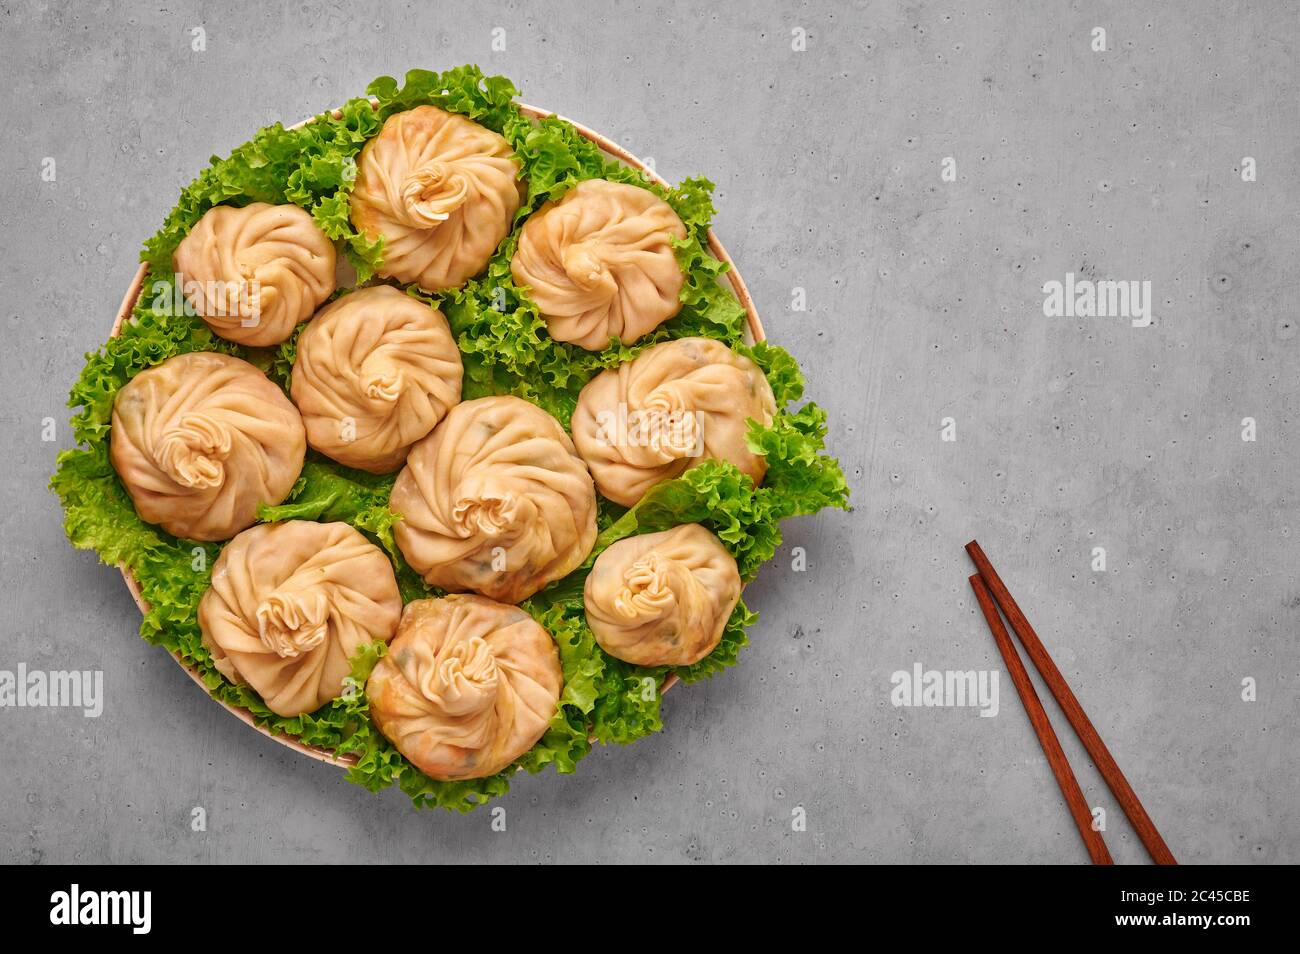 Veg Momos on gray concrete table top . Momos is the popular dish of indian, tibetan, chinese cuisines. Asian food. Vegetarian meal. Copy space. Top vi Stock Photo